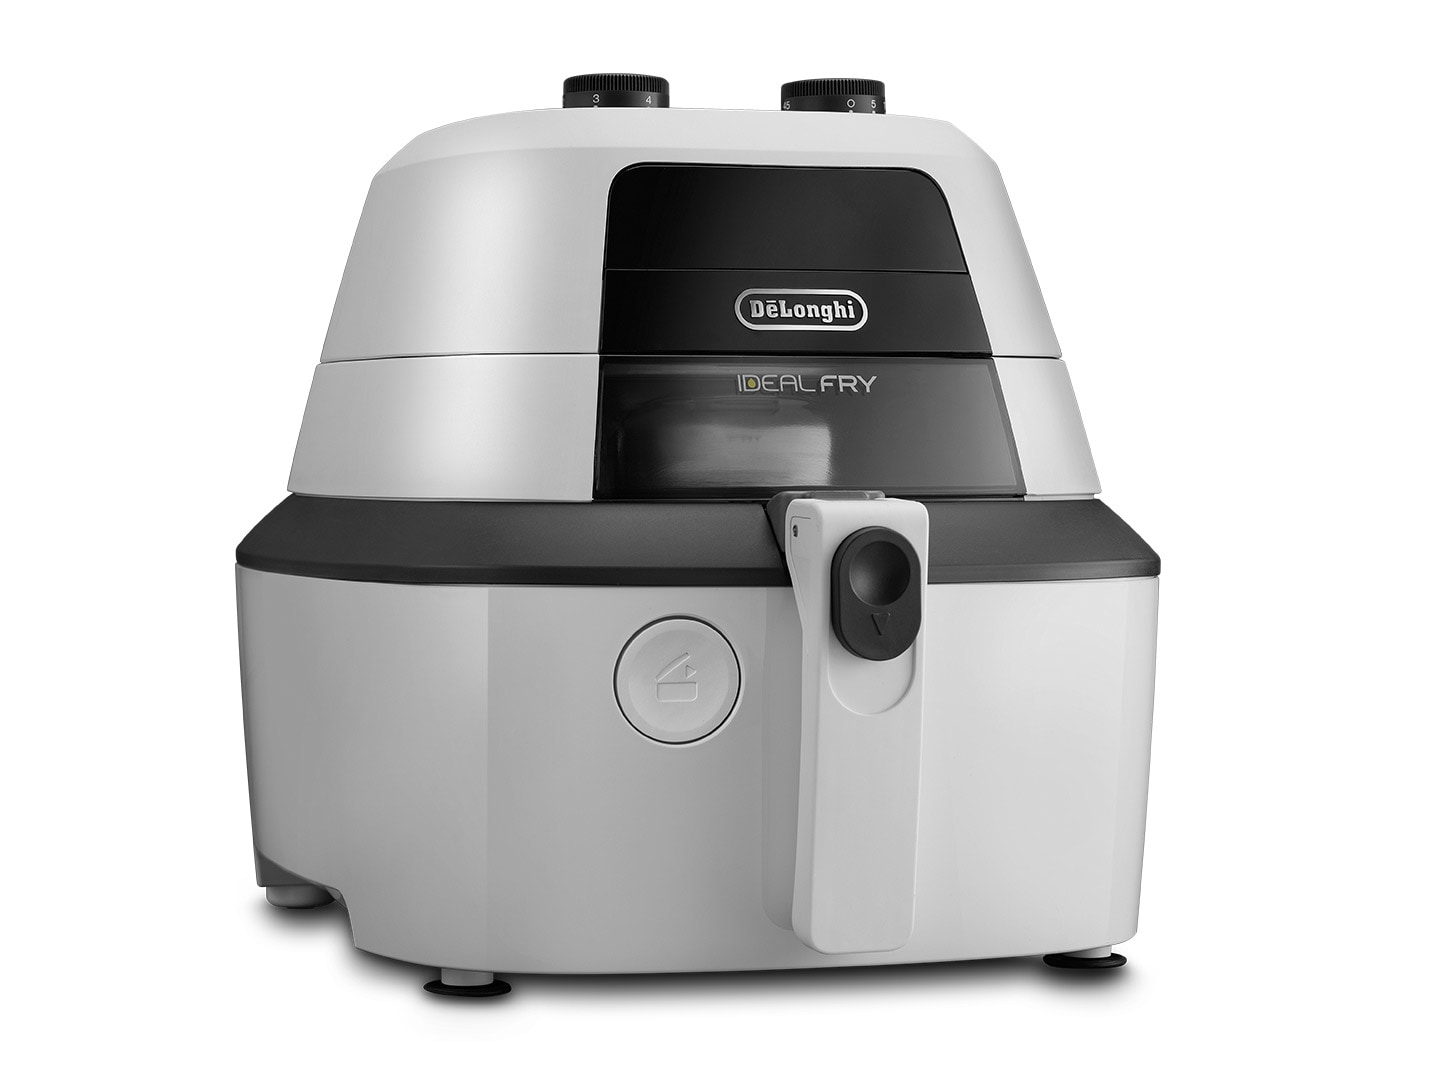 DeLonghi IdealFry 1.0kg Manual Hot Air Fryer - FH2133W